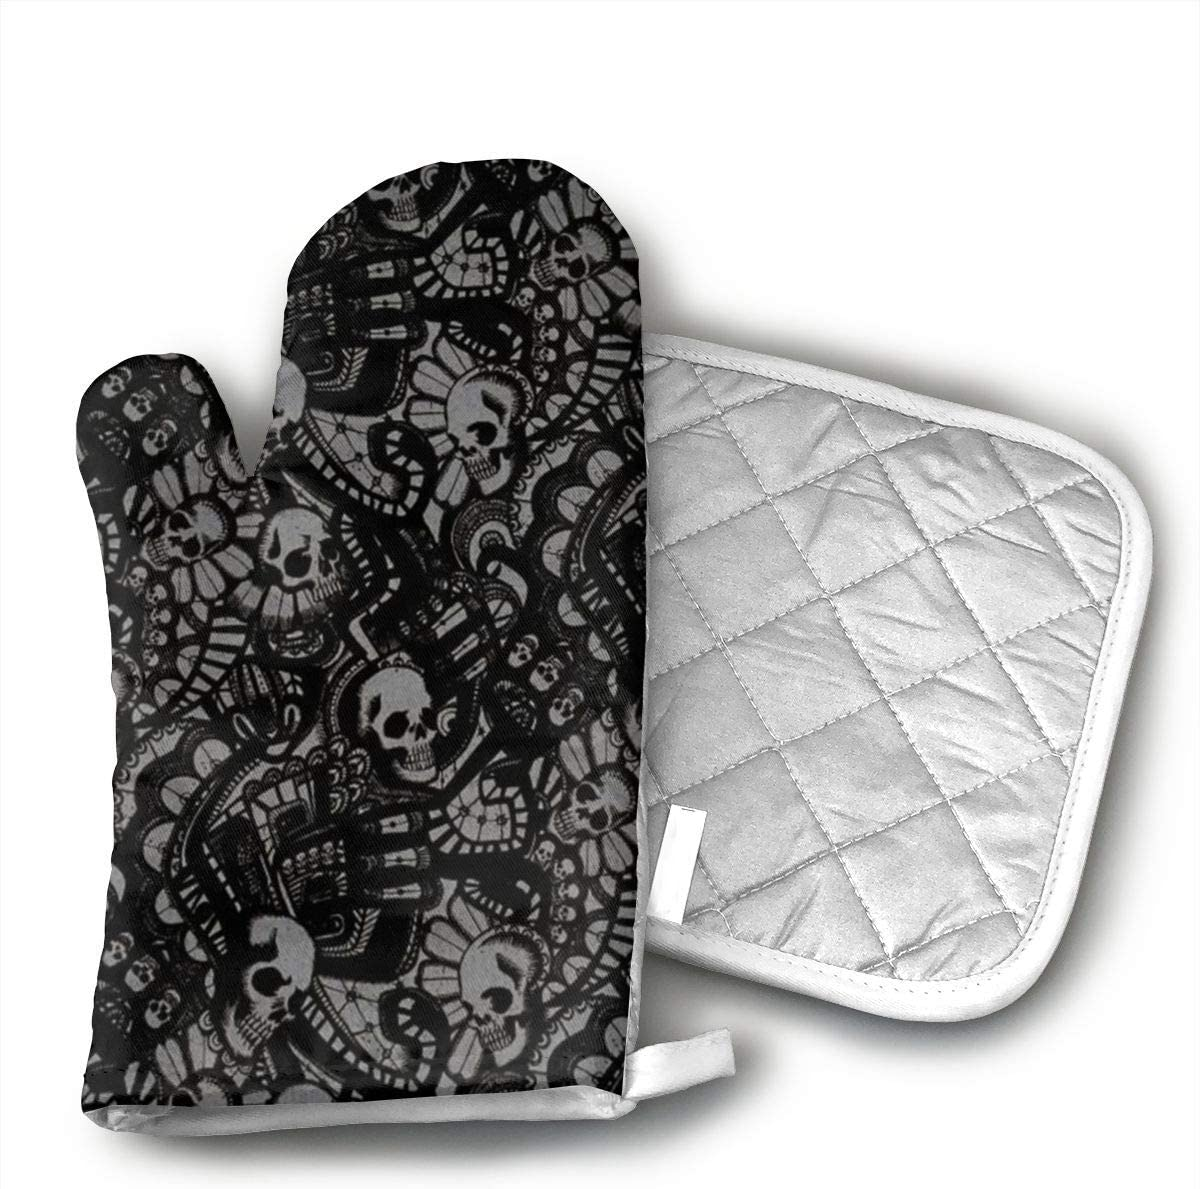 Wiqo9 Scary Skull Horror Oven Mitts and Pot Holders Kitchen Mitten Cooking Gloves,Cooking, Baking, BBQ.